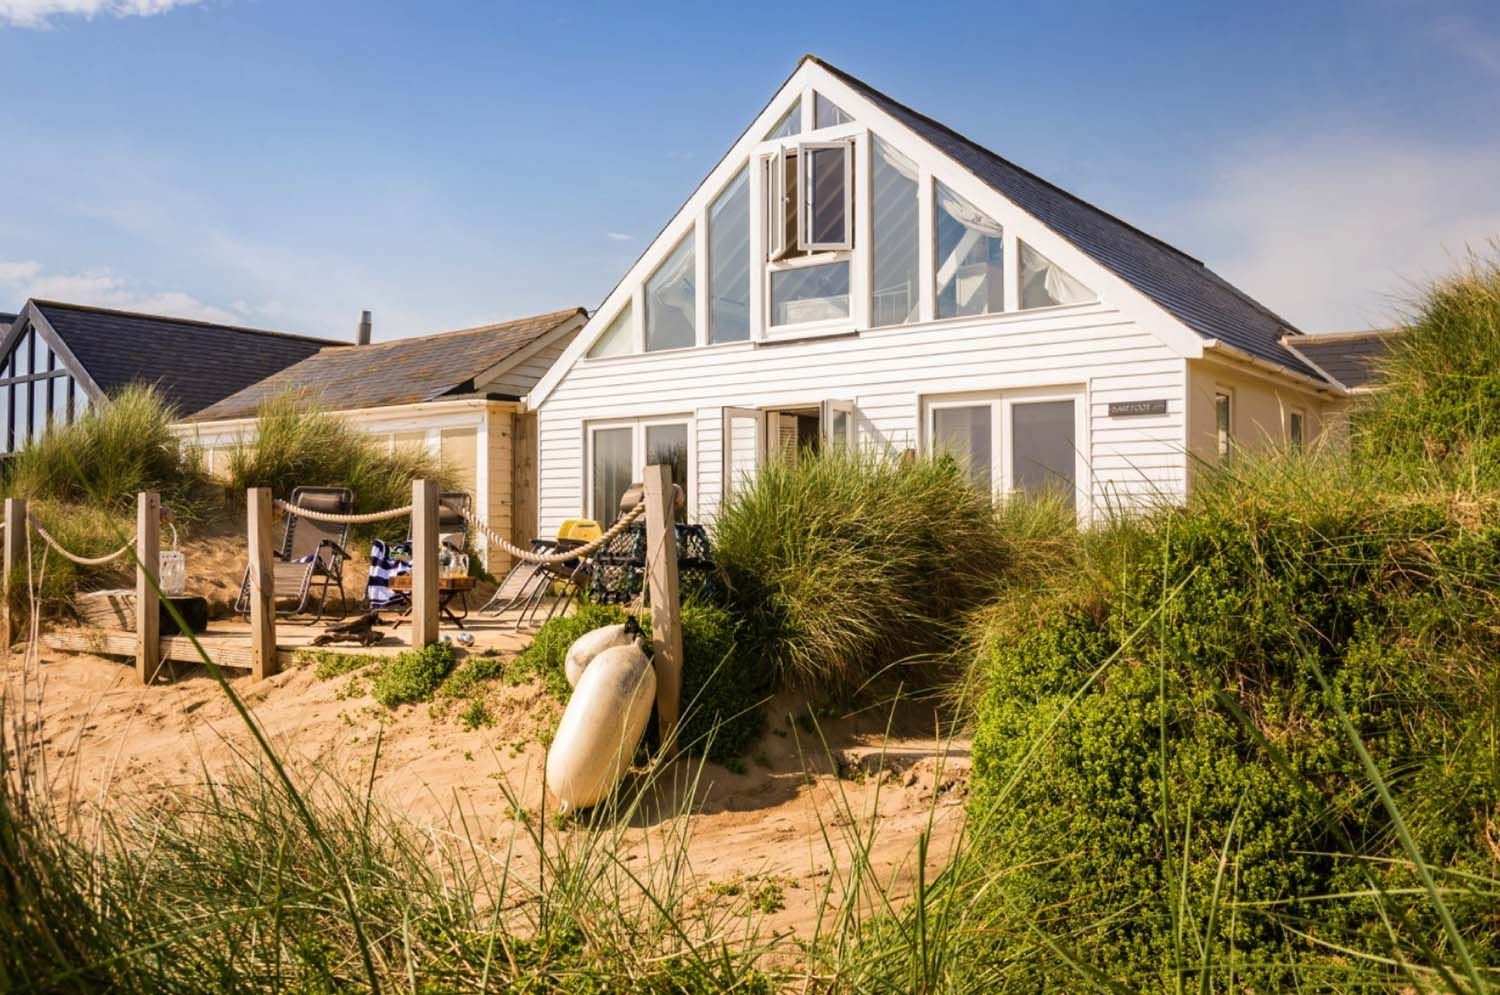 a perfect seaside holiday in east sussex barefoot beach house rh pinterest com